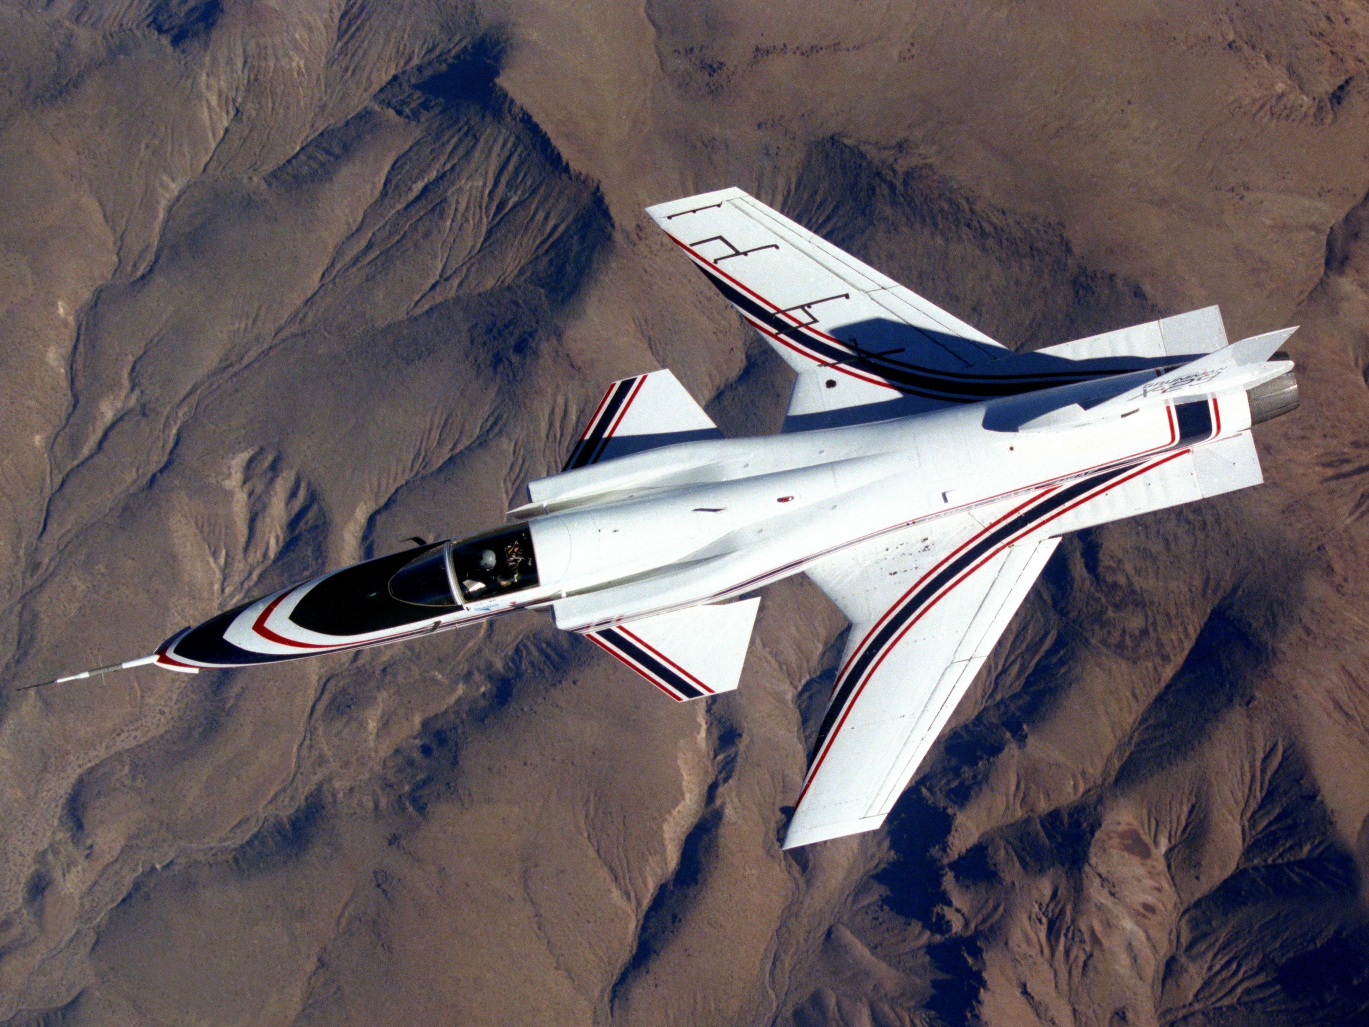 nasa fighter aircraft - photo #42